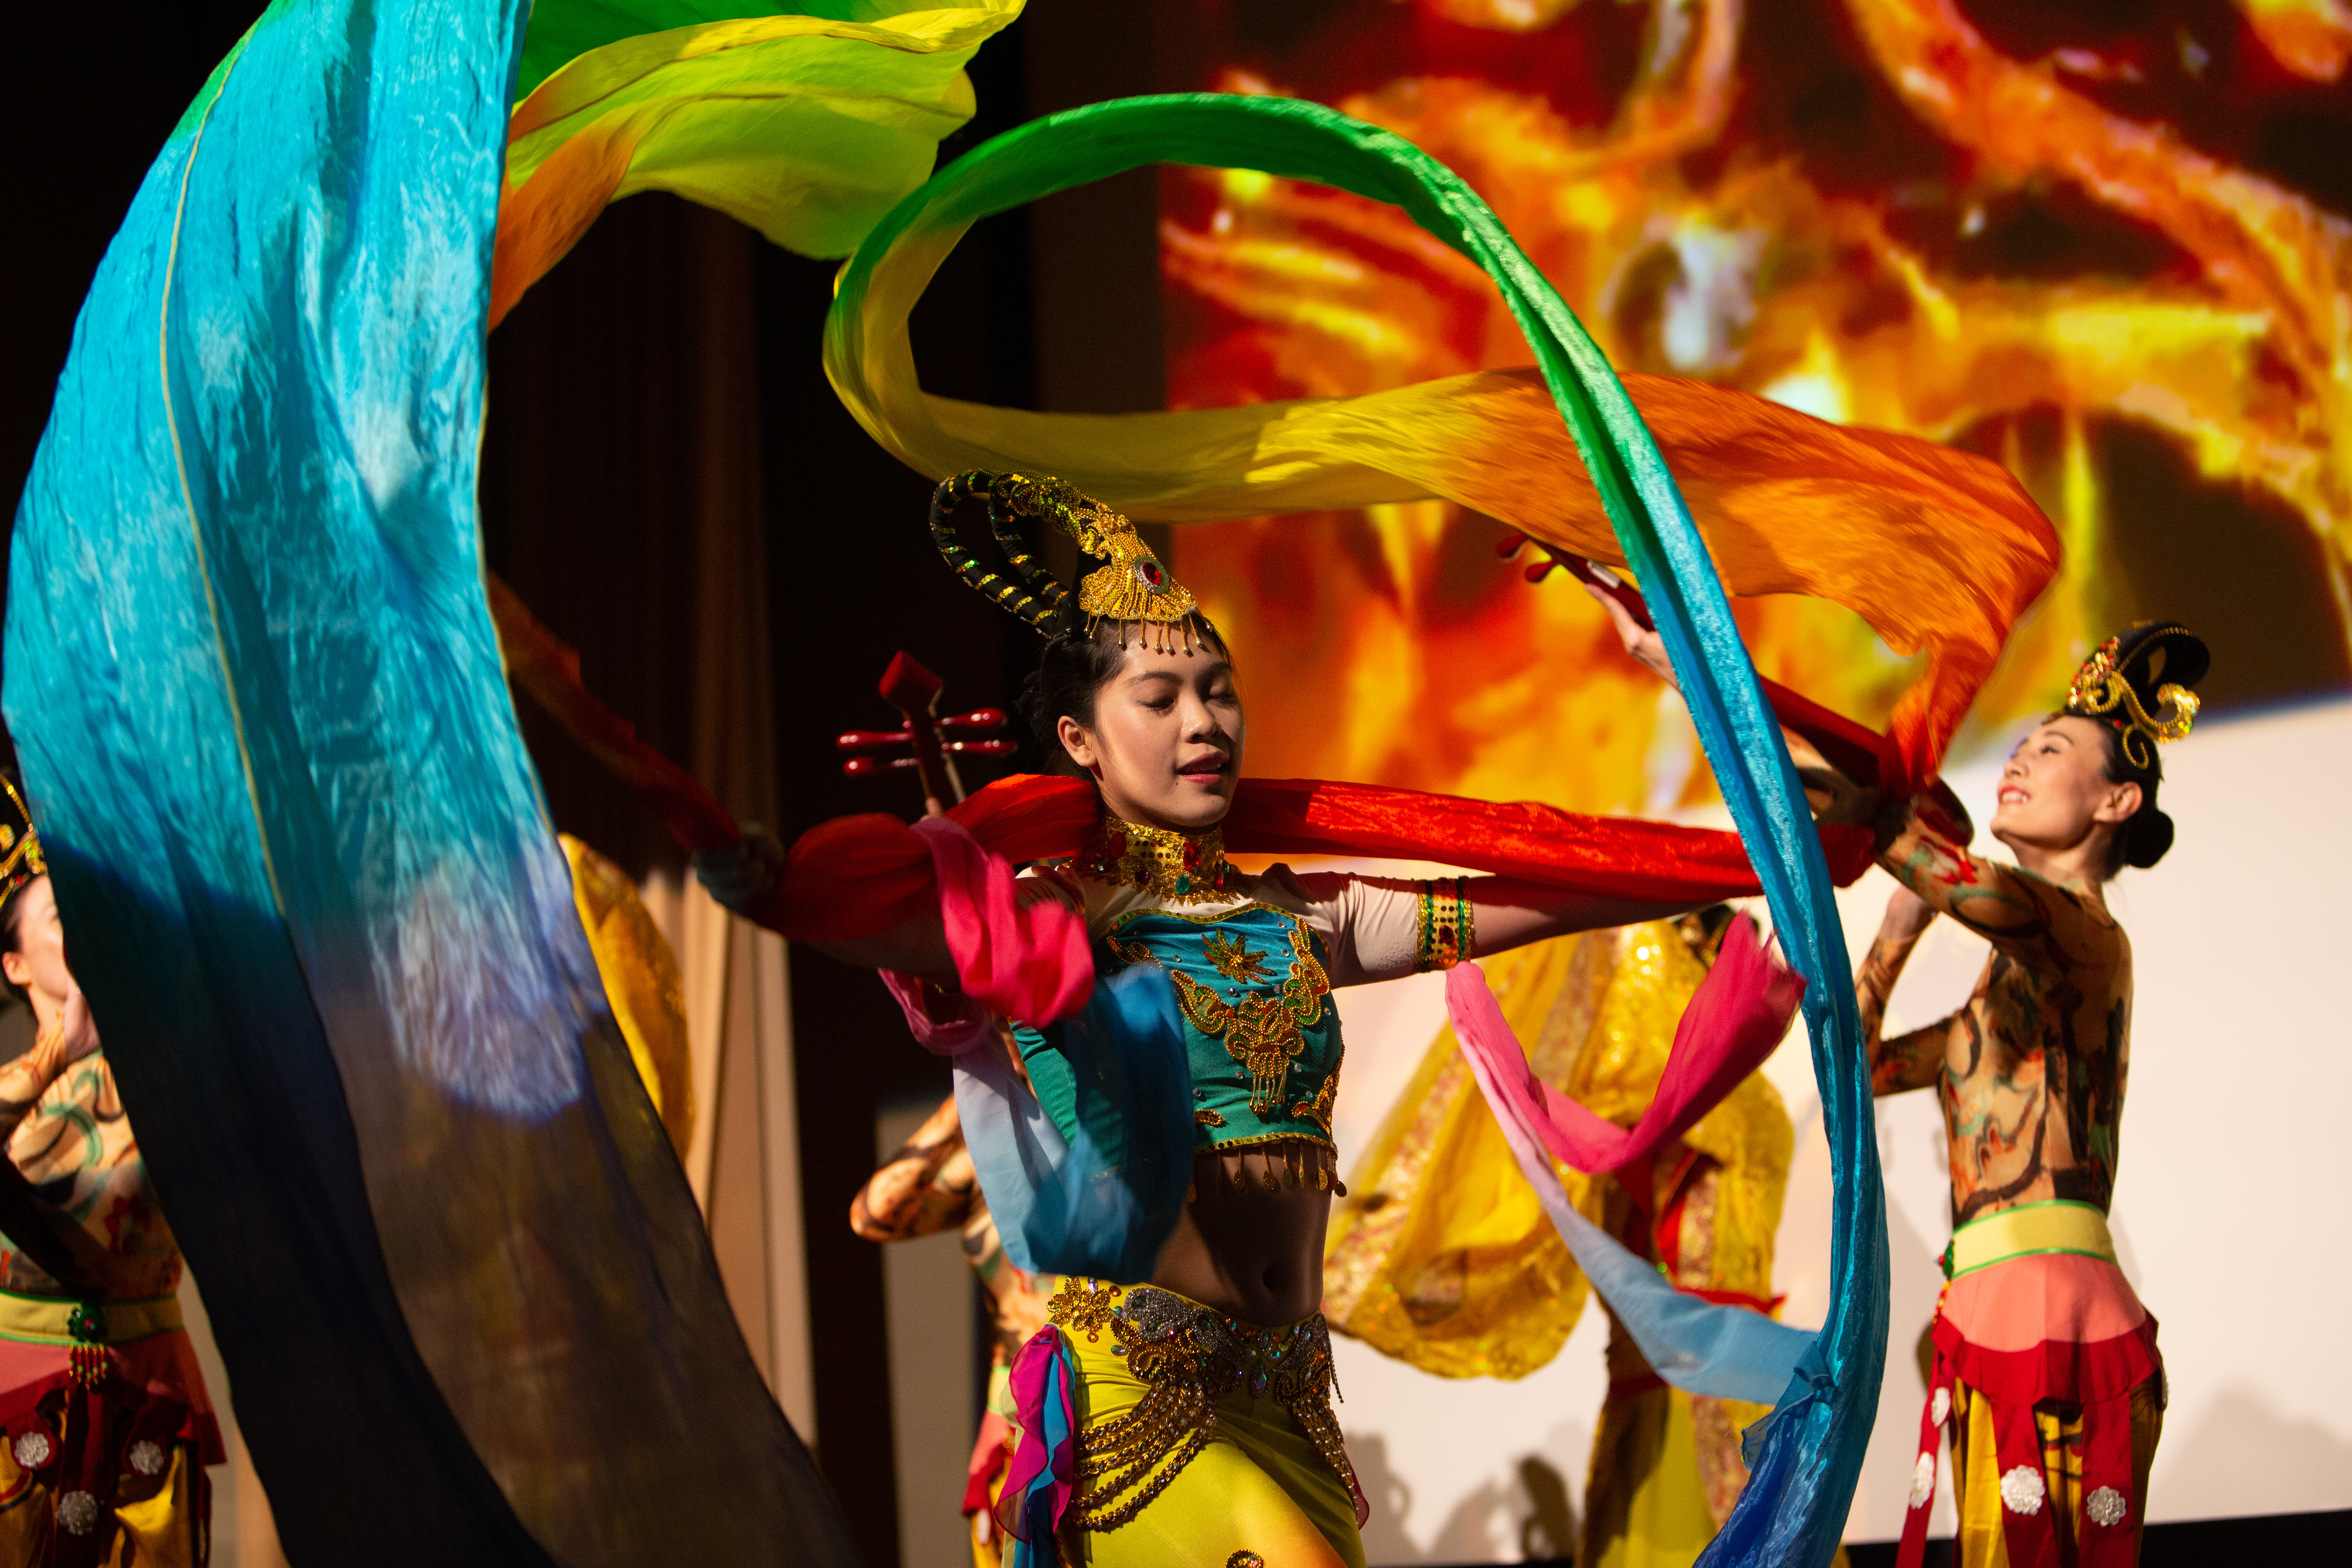 Members of the Hao Dance Chinese dance studio perform during DePaul University's 12th annual celebration of the Chinese lunar new year. (DePaul University/Randall Spriggs)